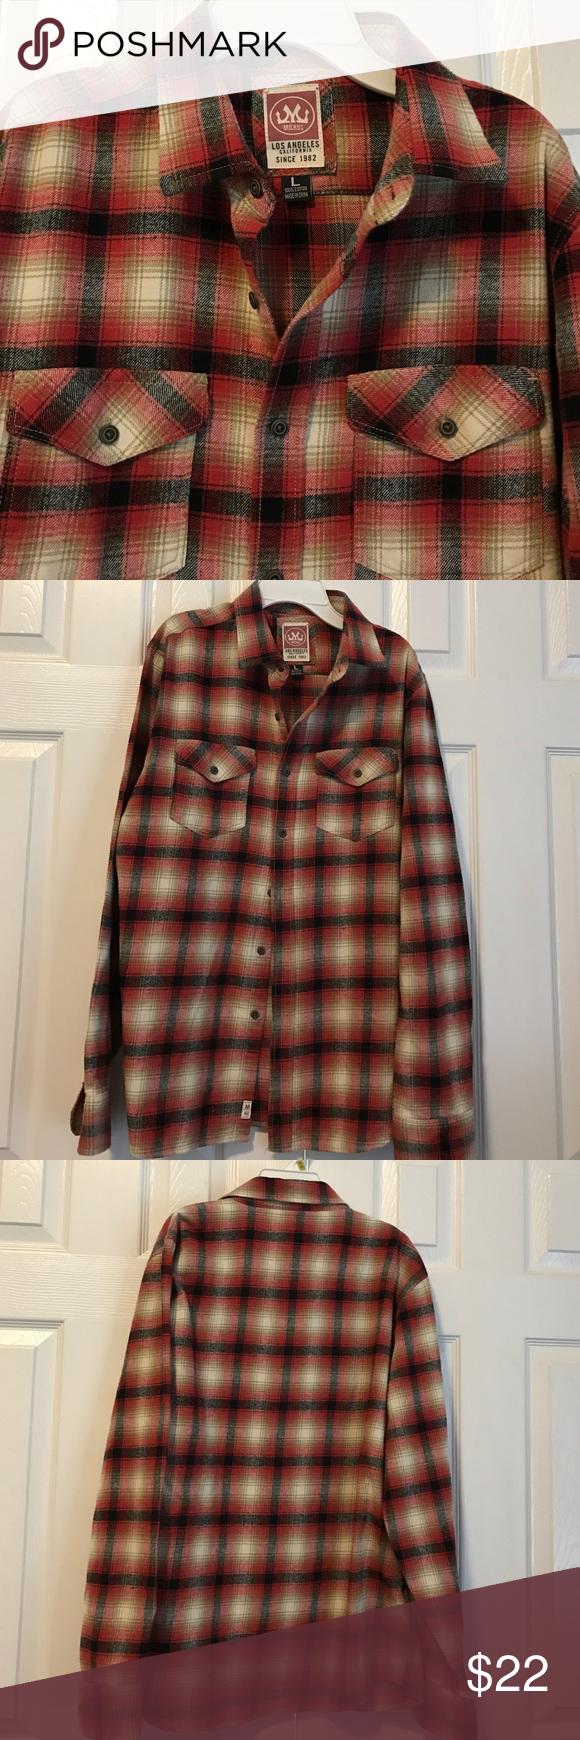 Flannel with shirt underneath  Micros Los Angeles flannel plaid button down shirt  Flannels Plaid